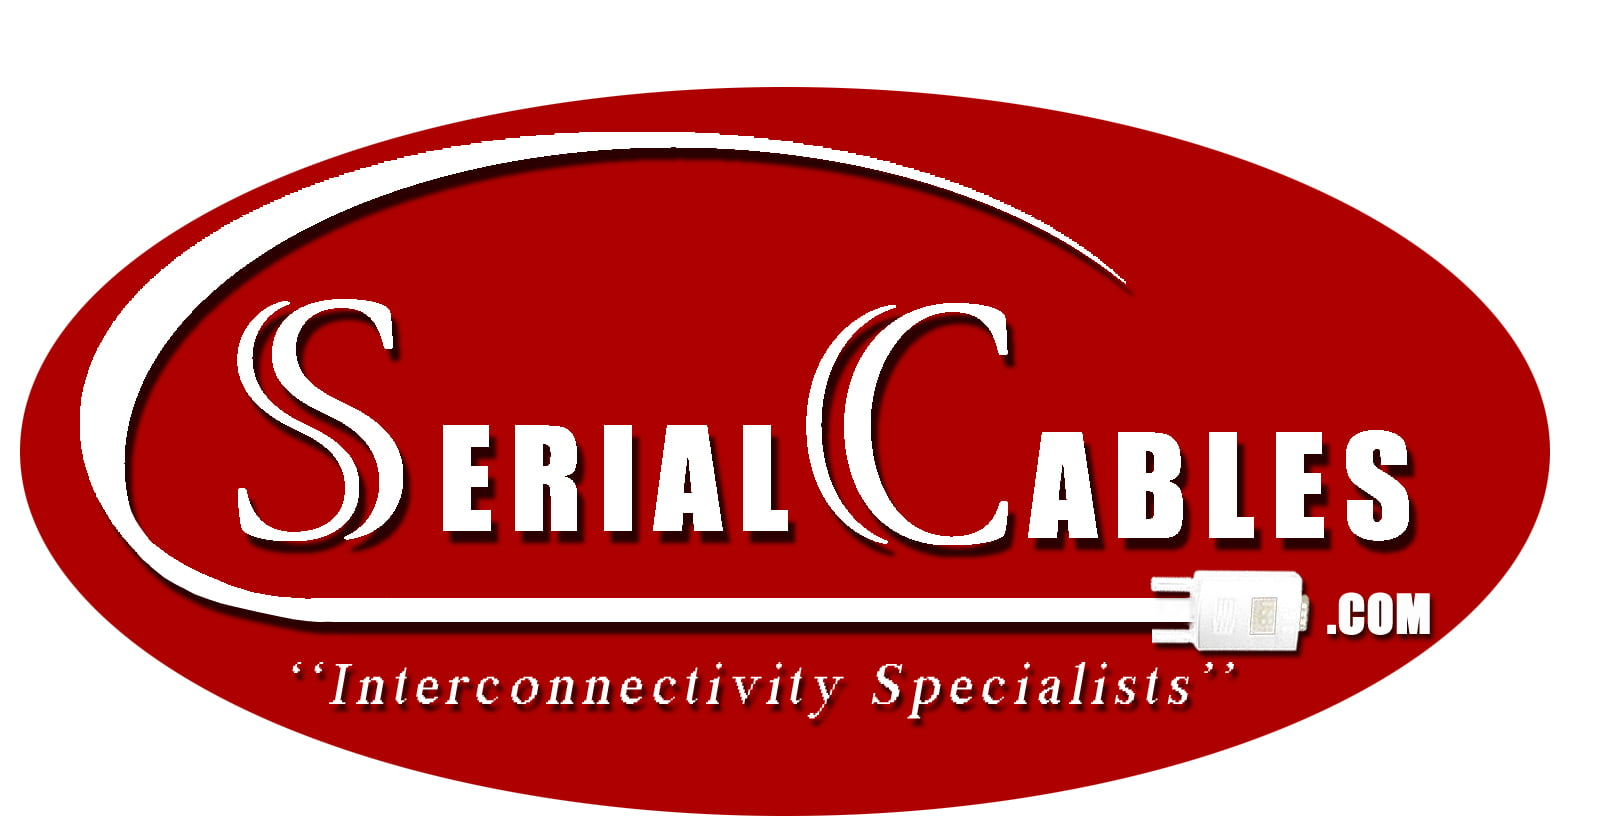 Serial Cables Introduces the Industry's First PCIe/NVMe Gen4 Active/Passive JBOFs